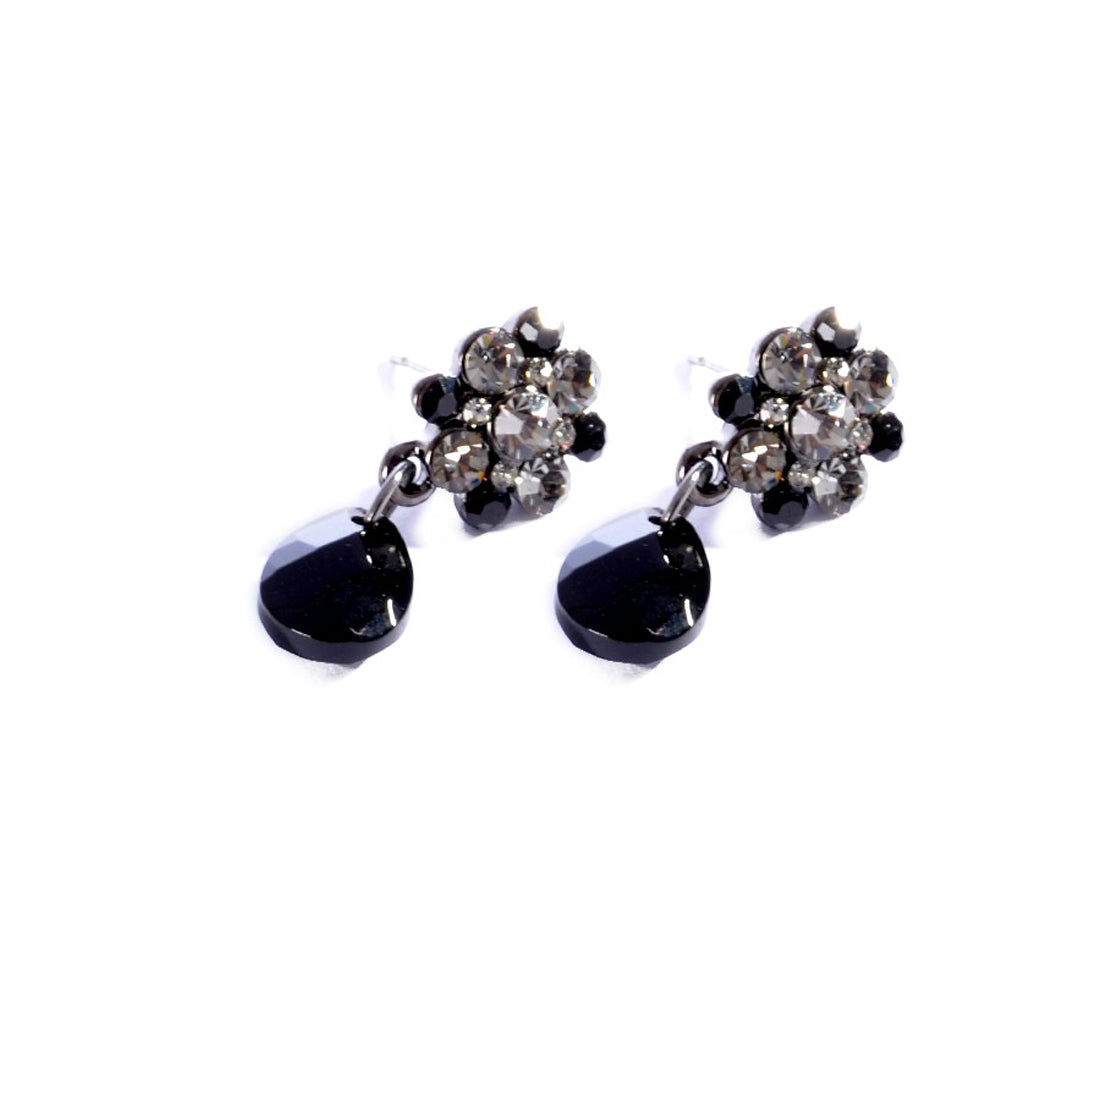 Earrings color silver & Black -757